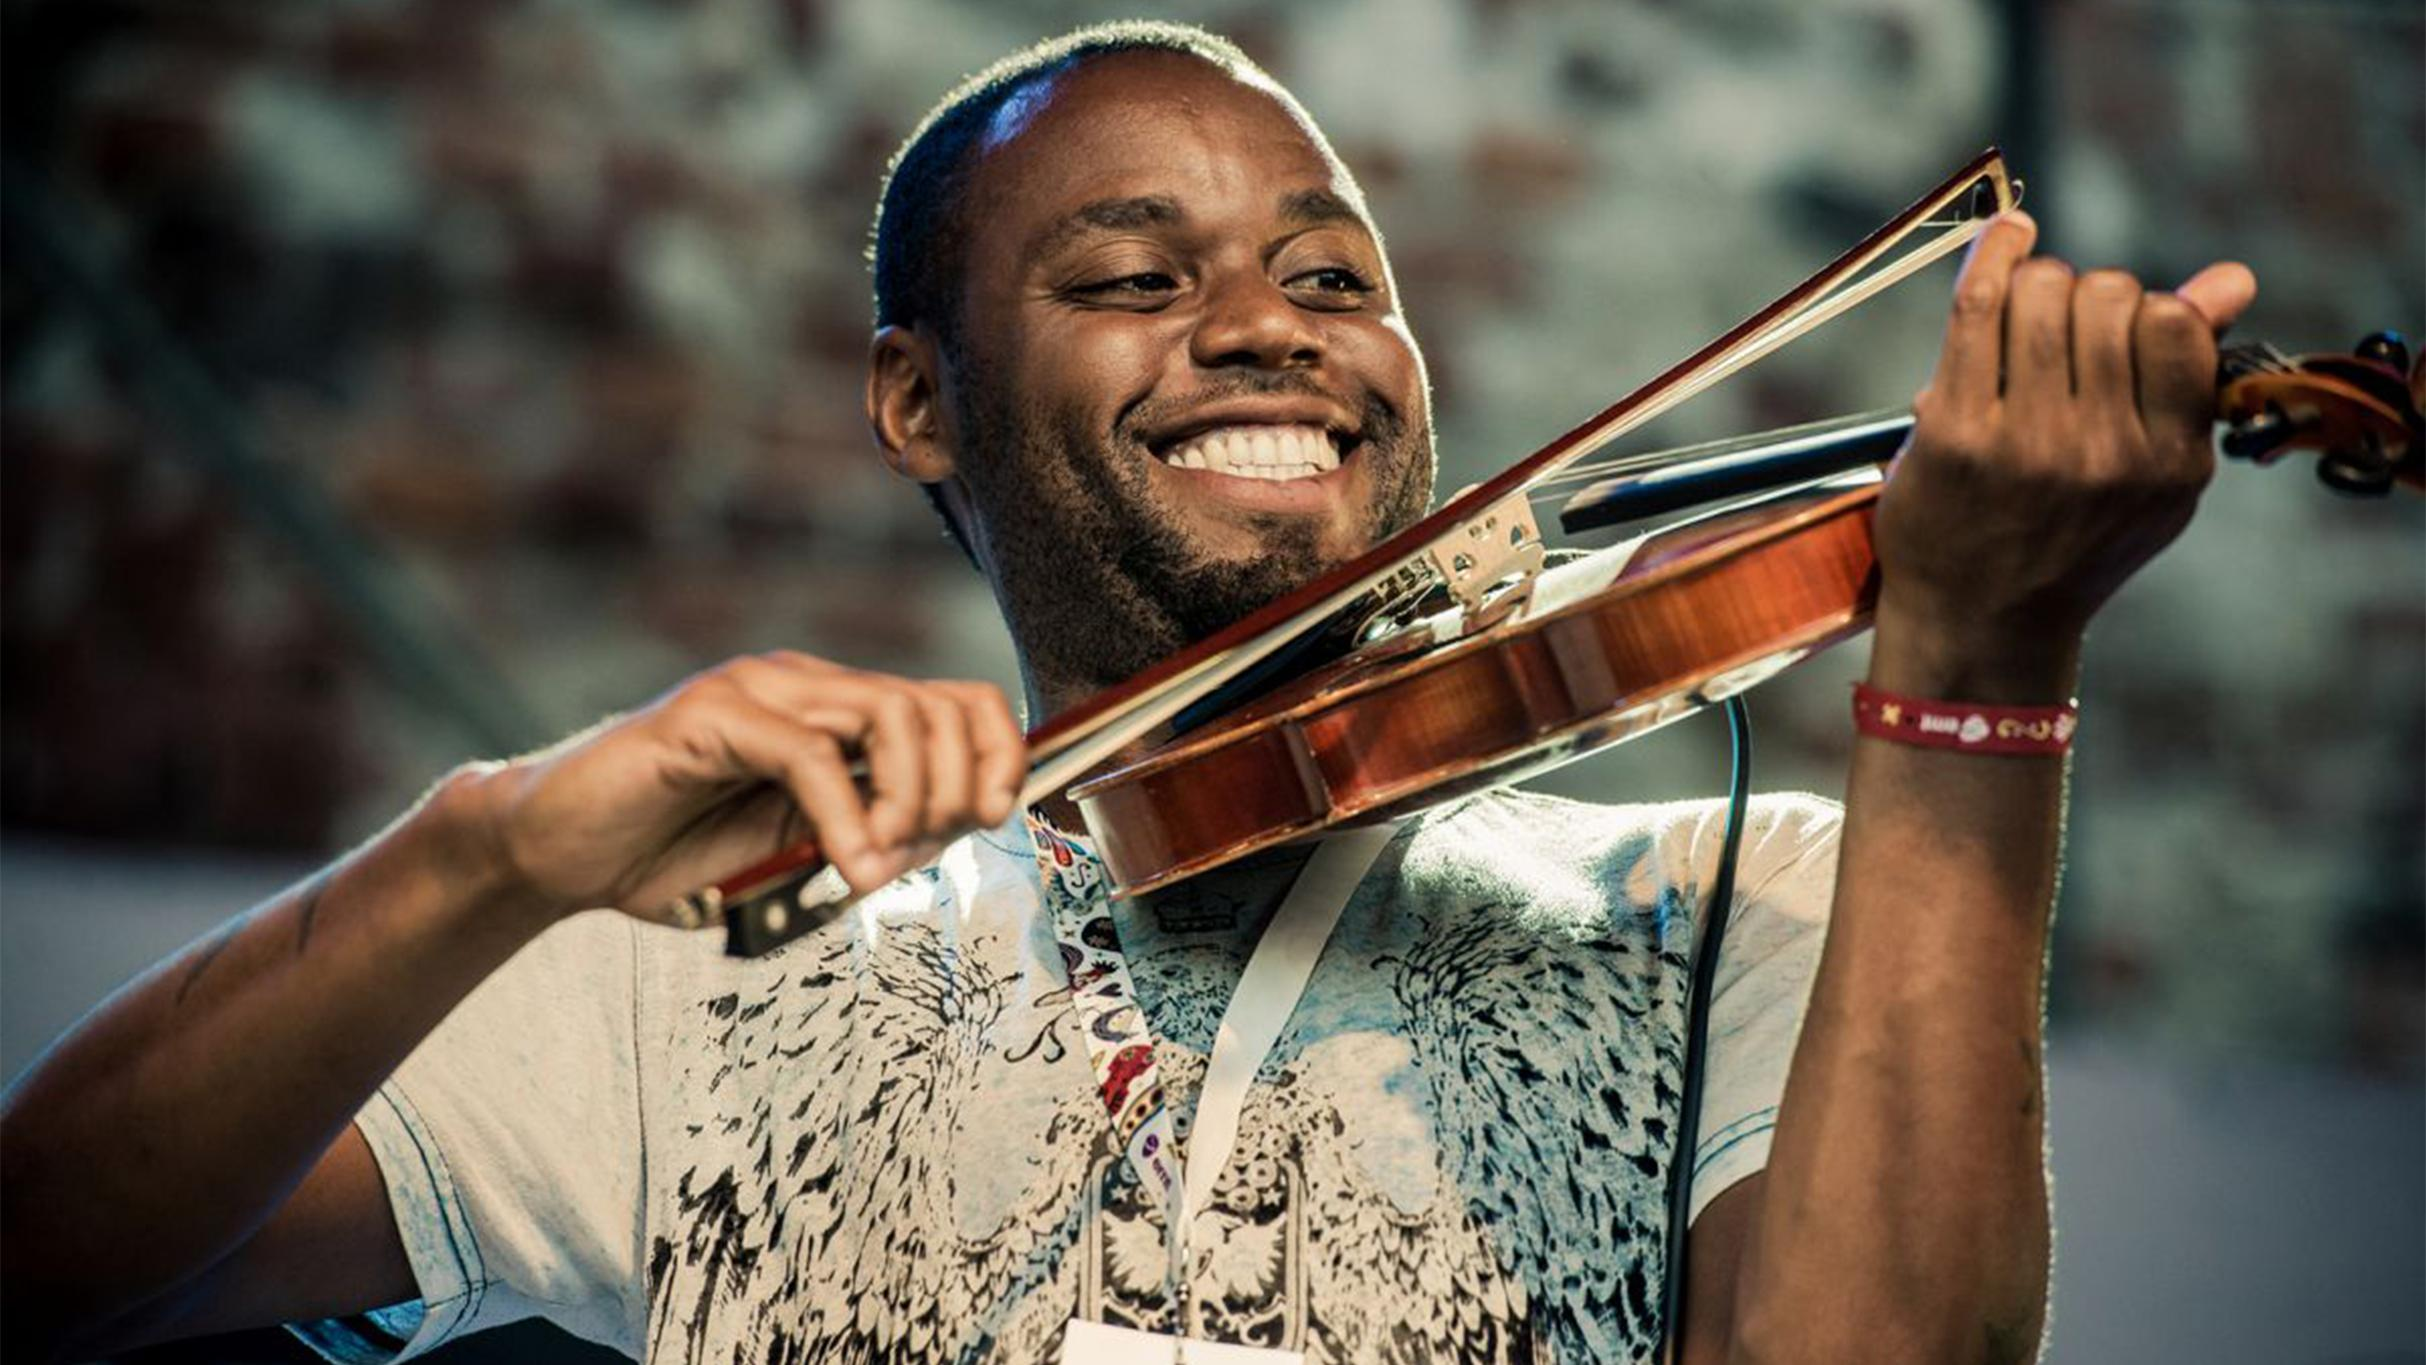 Cedric Watson smiles while performing.